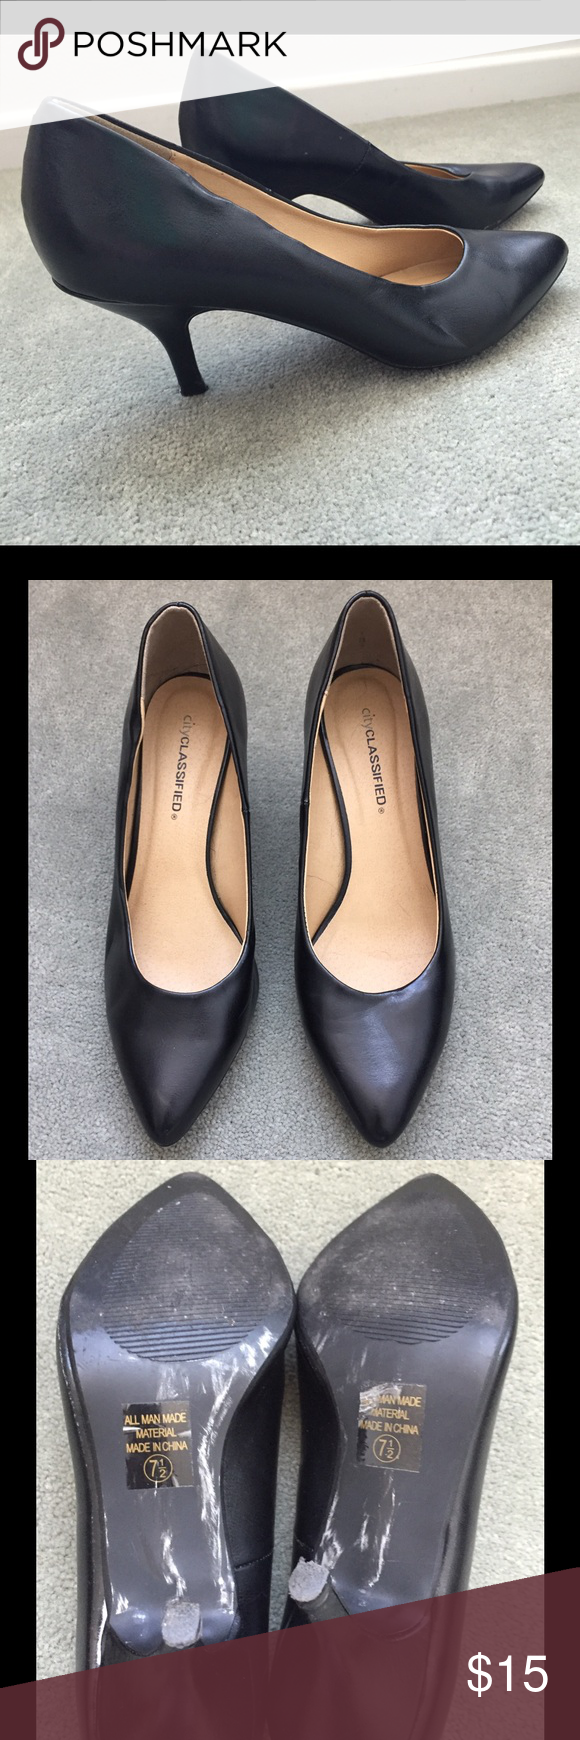 Classic Black Heels In great condition. Heel size about 1-2 inches. Thanks for looking and feel free to ask any questions 😊 City Classisfied Shoes Heels